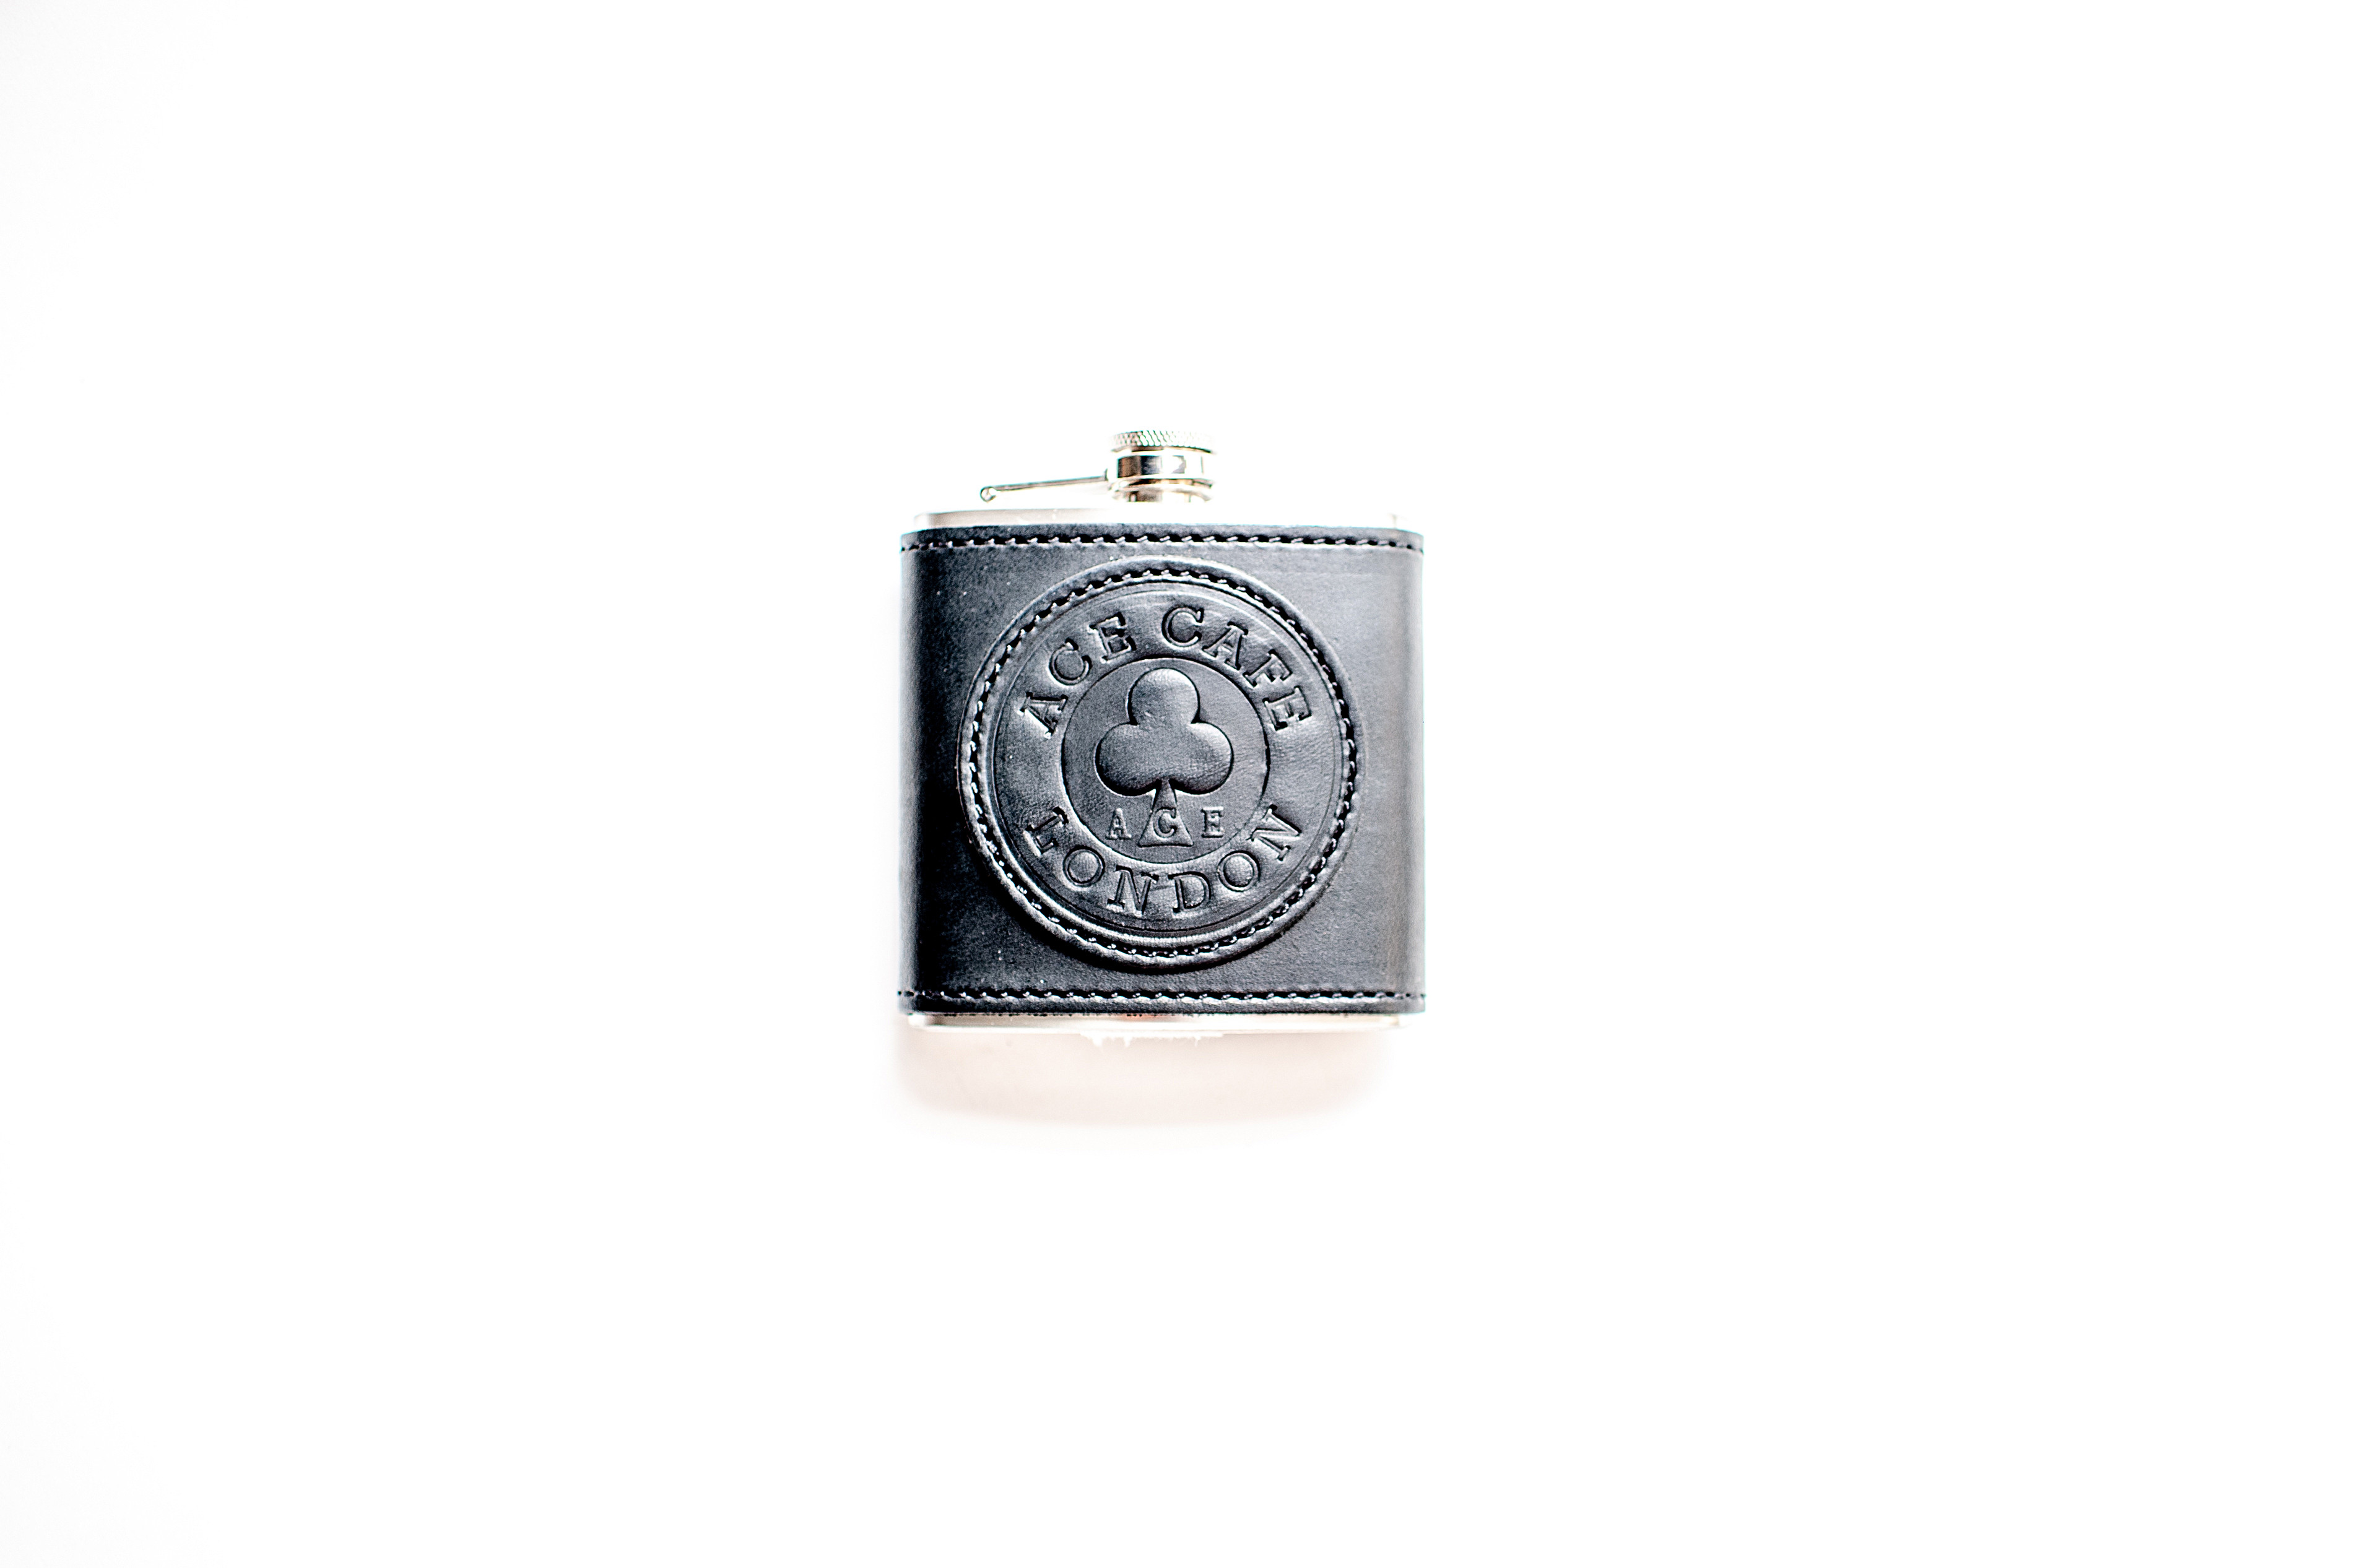 Ace Cafe London leather flask